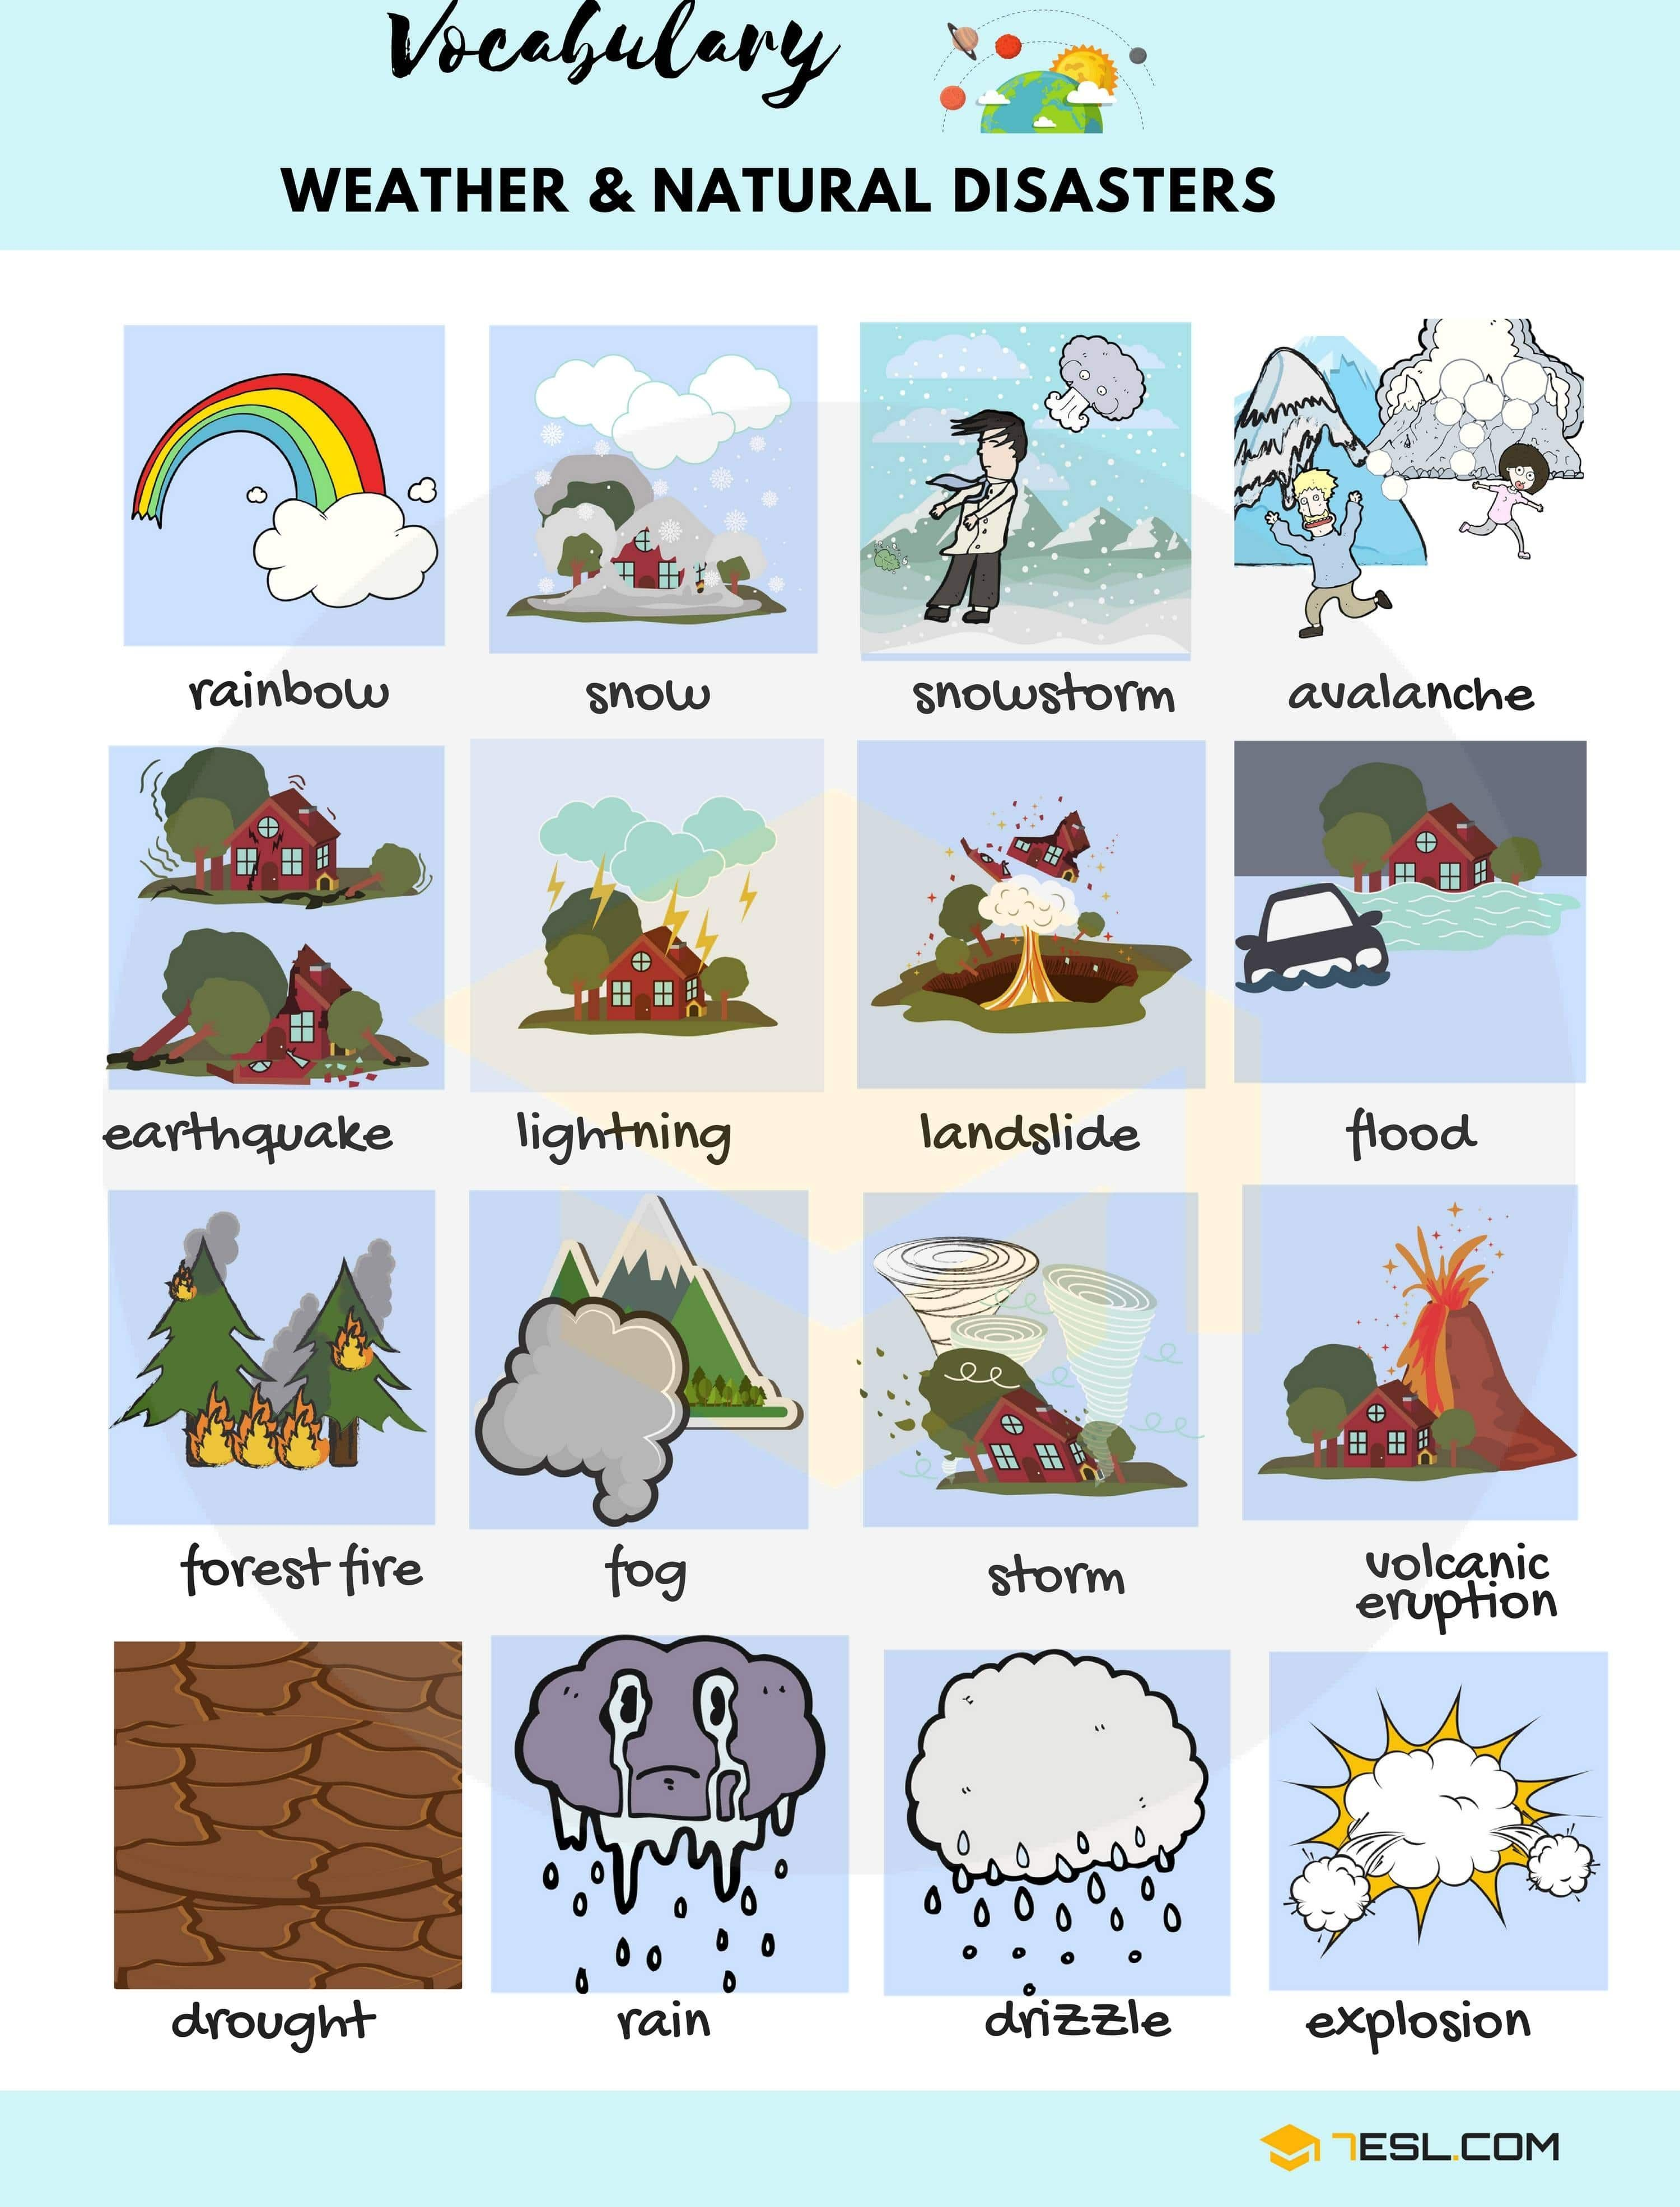 0shares Learn Weather And Natural Disasters Vocabulary Through Pictures Weather Is The State Of